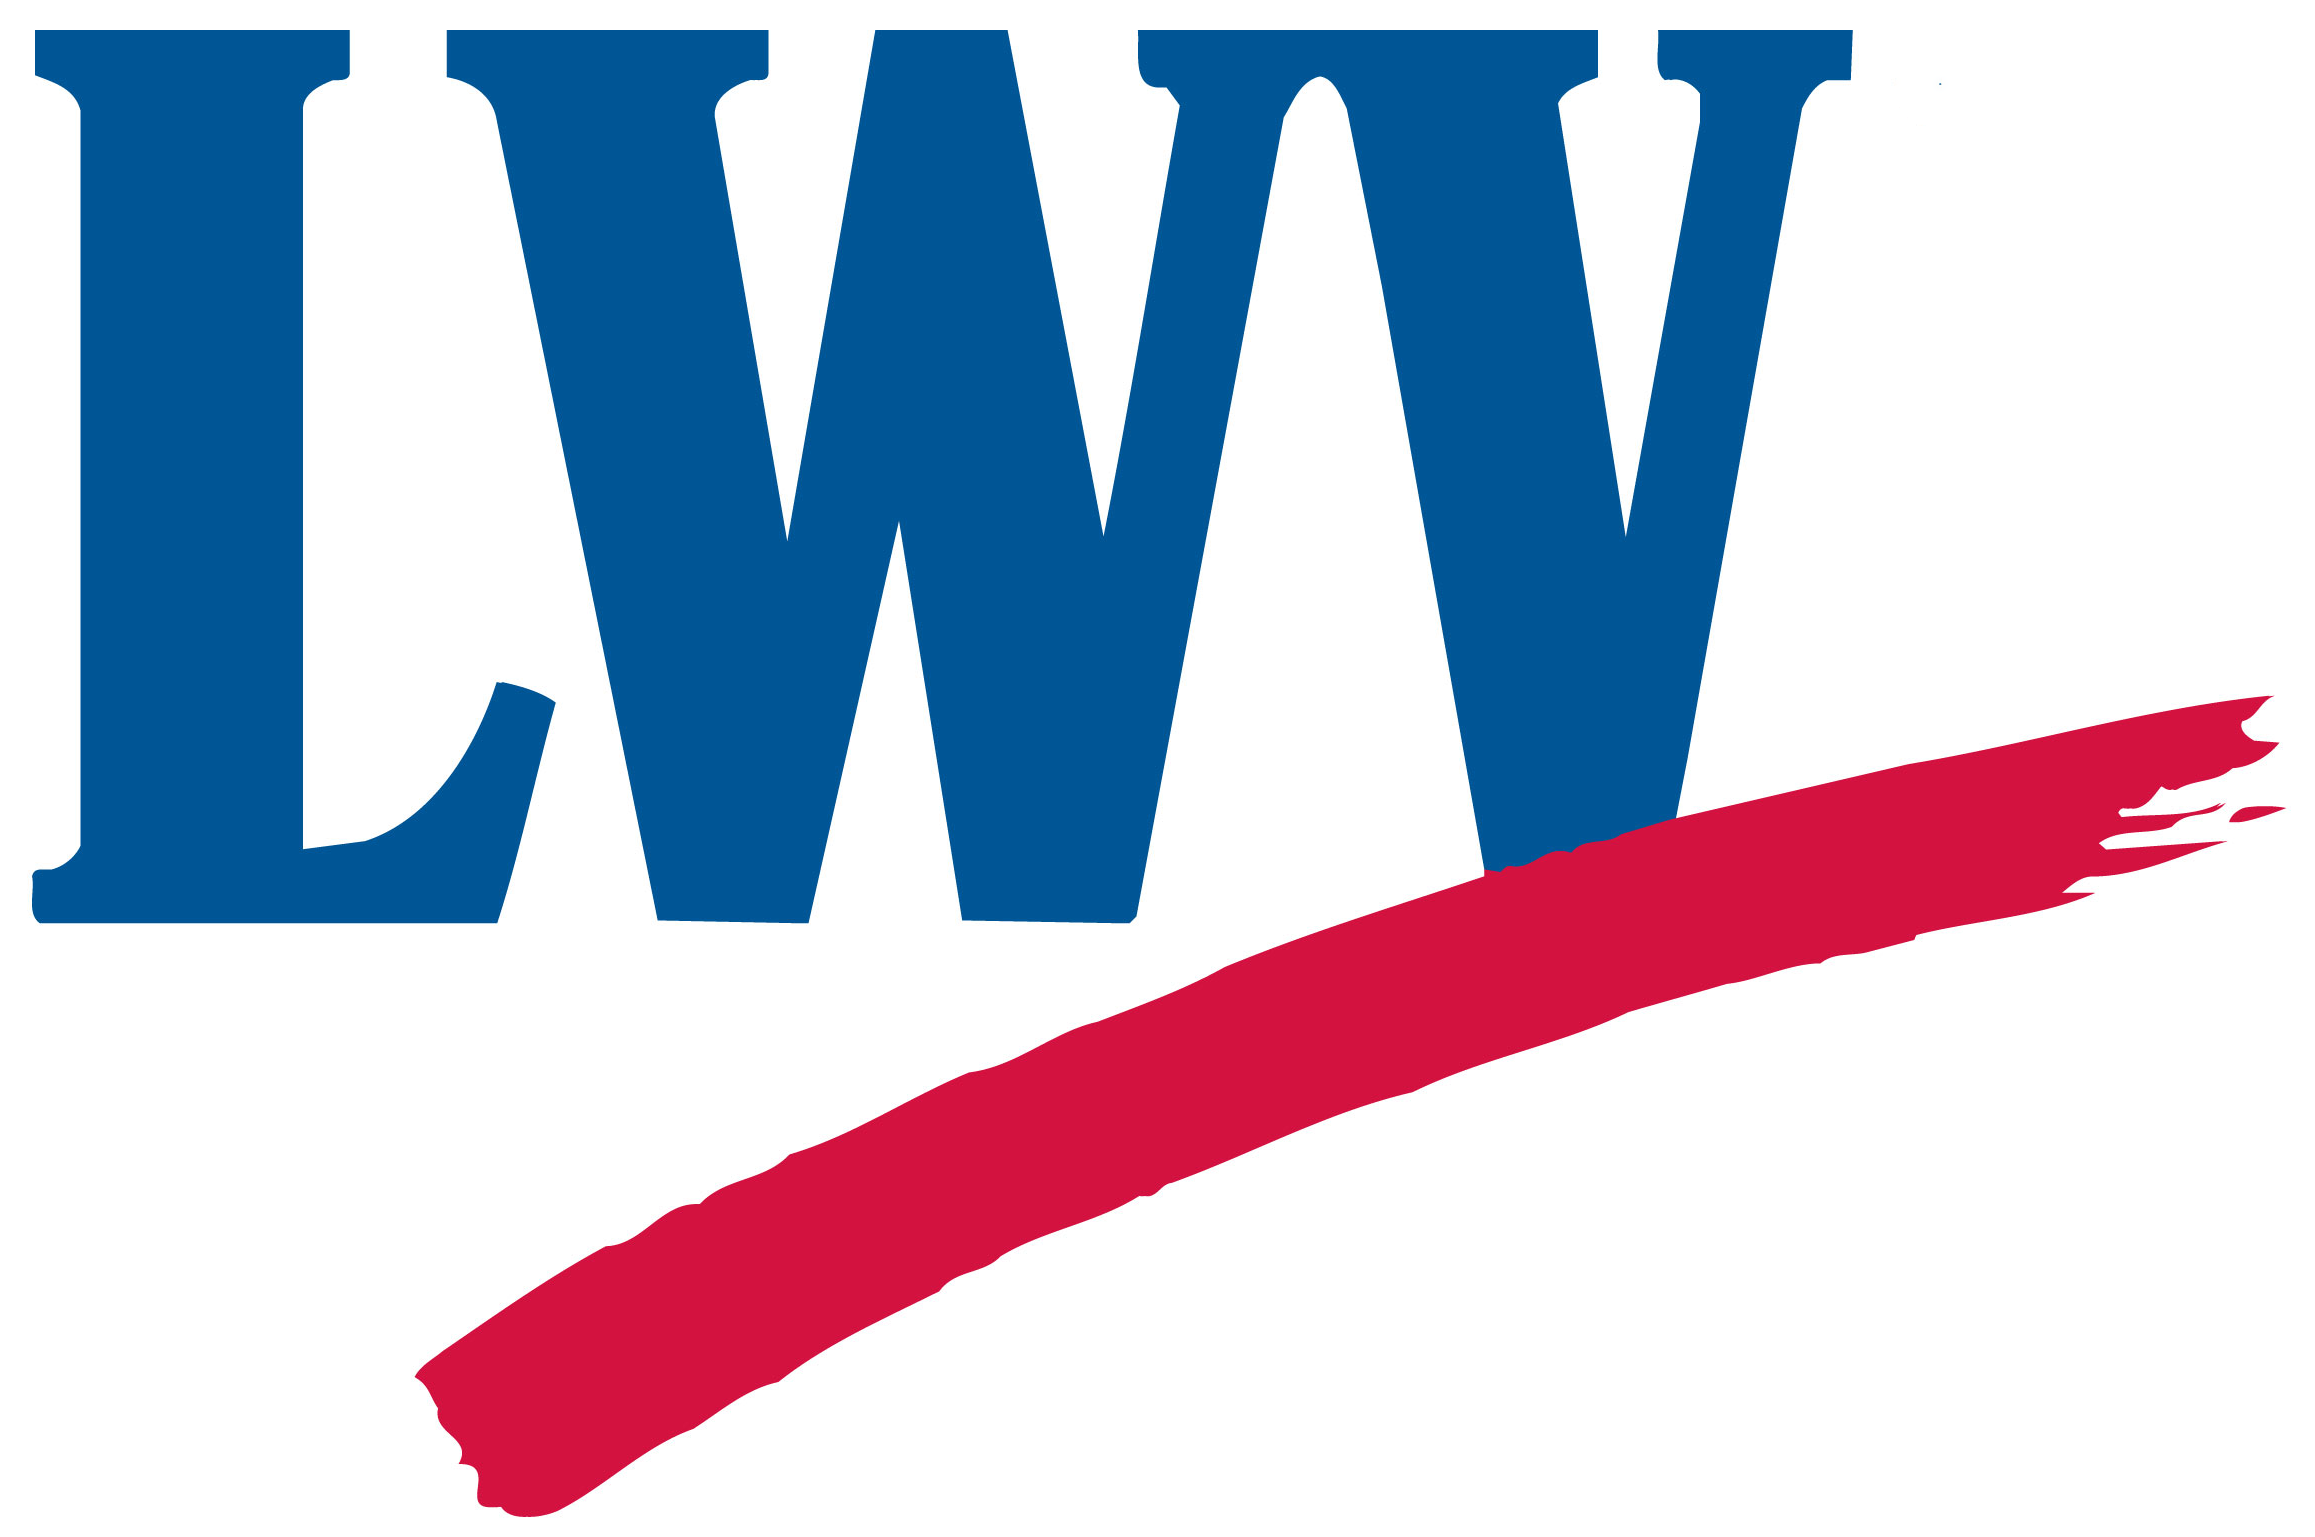 League of Women Voters of California - Executive DirectorSacramento, CA